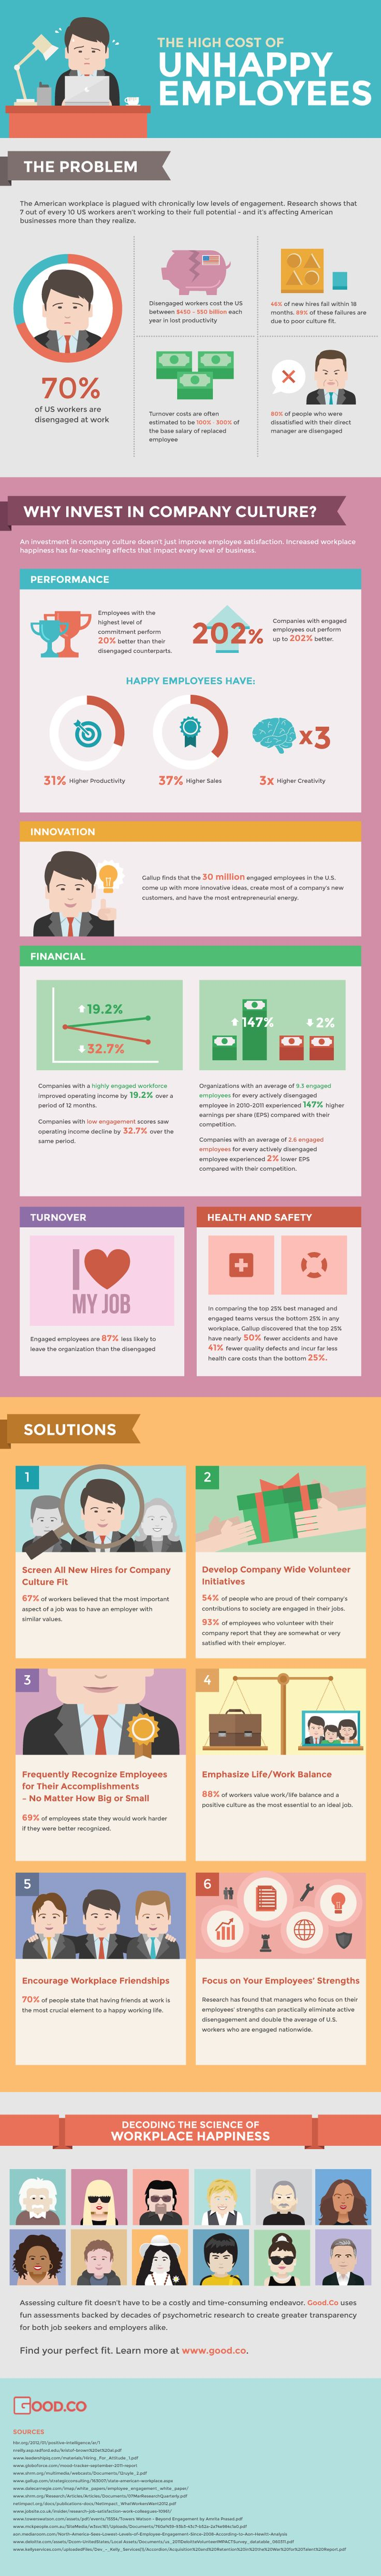 Workplace Happiness: The High Cost of Unhappy Employees (INFOGRAPHIC)